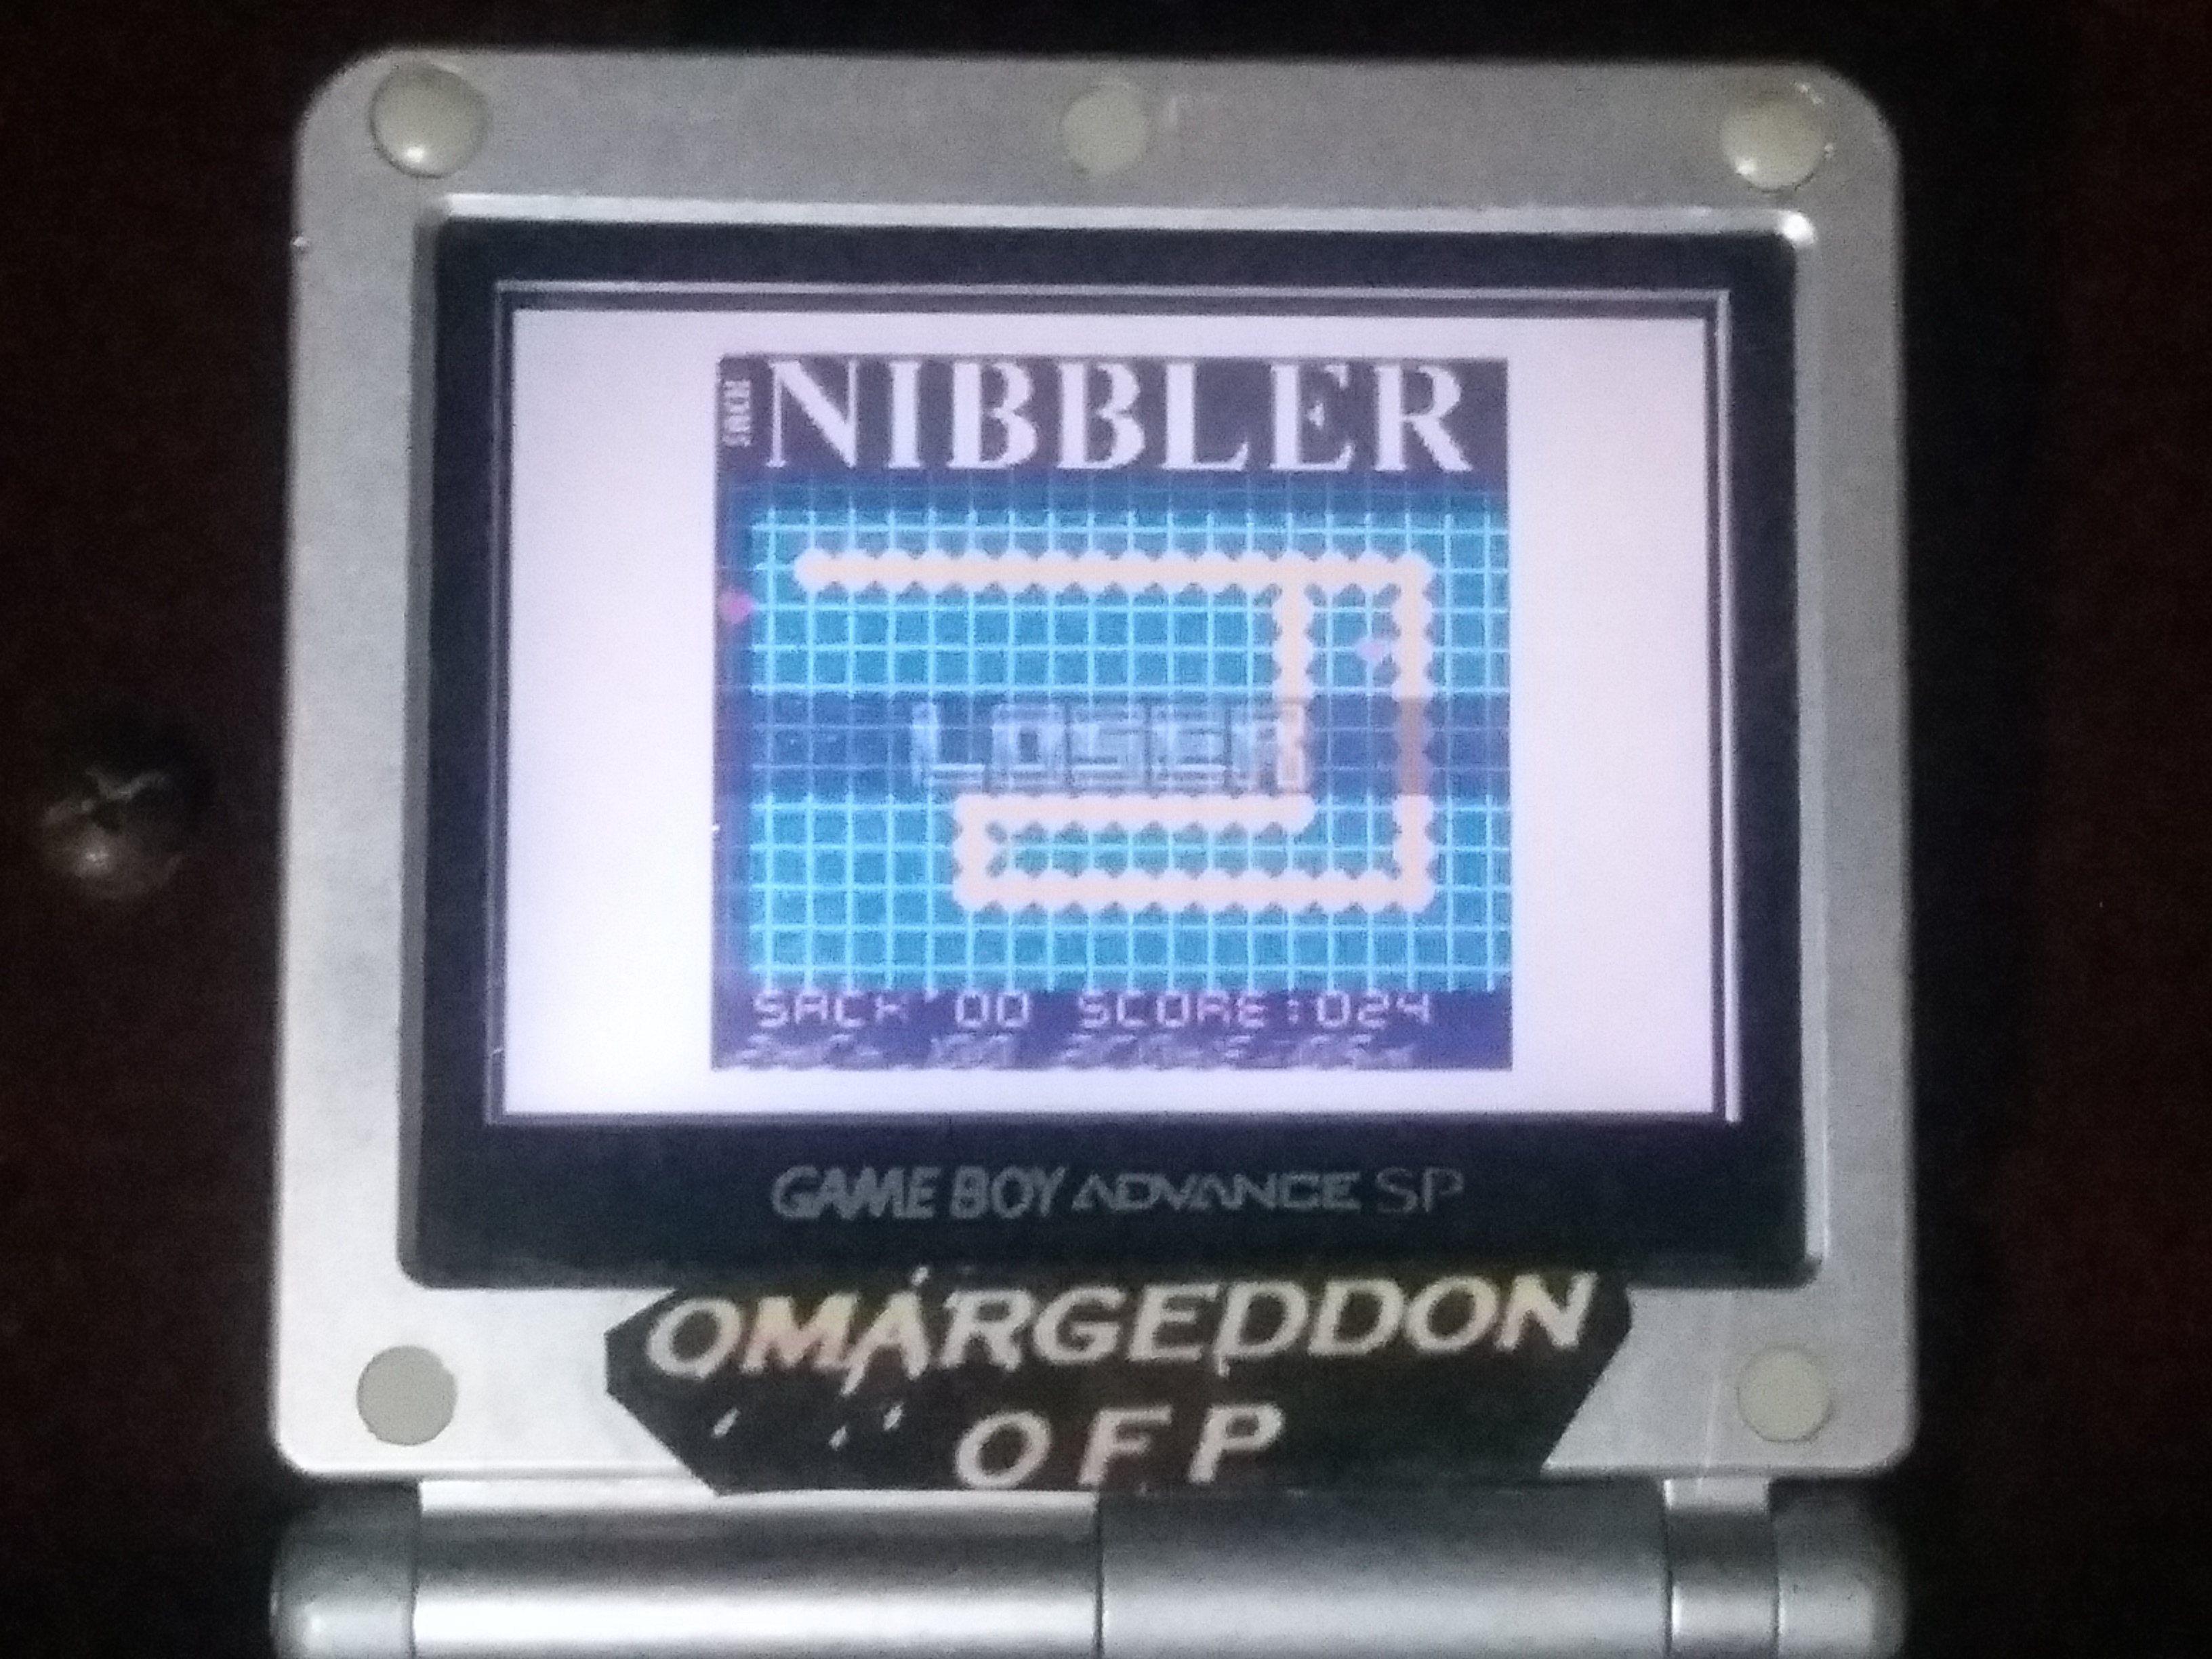 omargeddon: Nibbler (Game Boy Color) 24 points on 2018-01-29 18:41:07